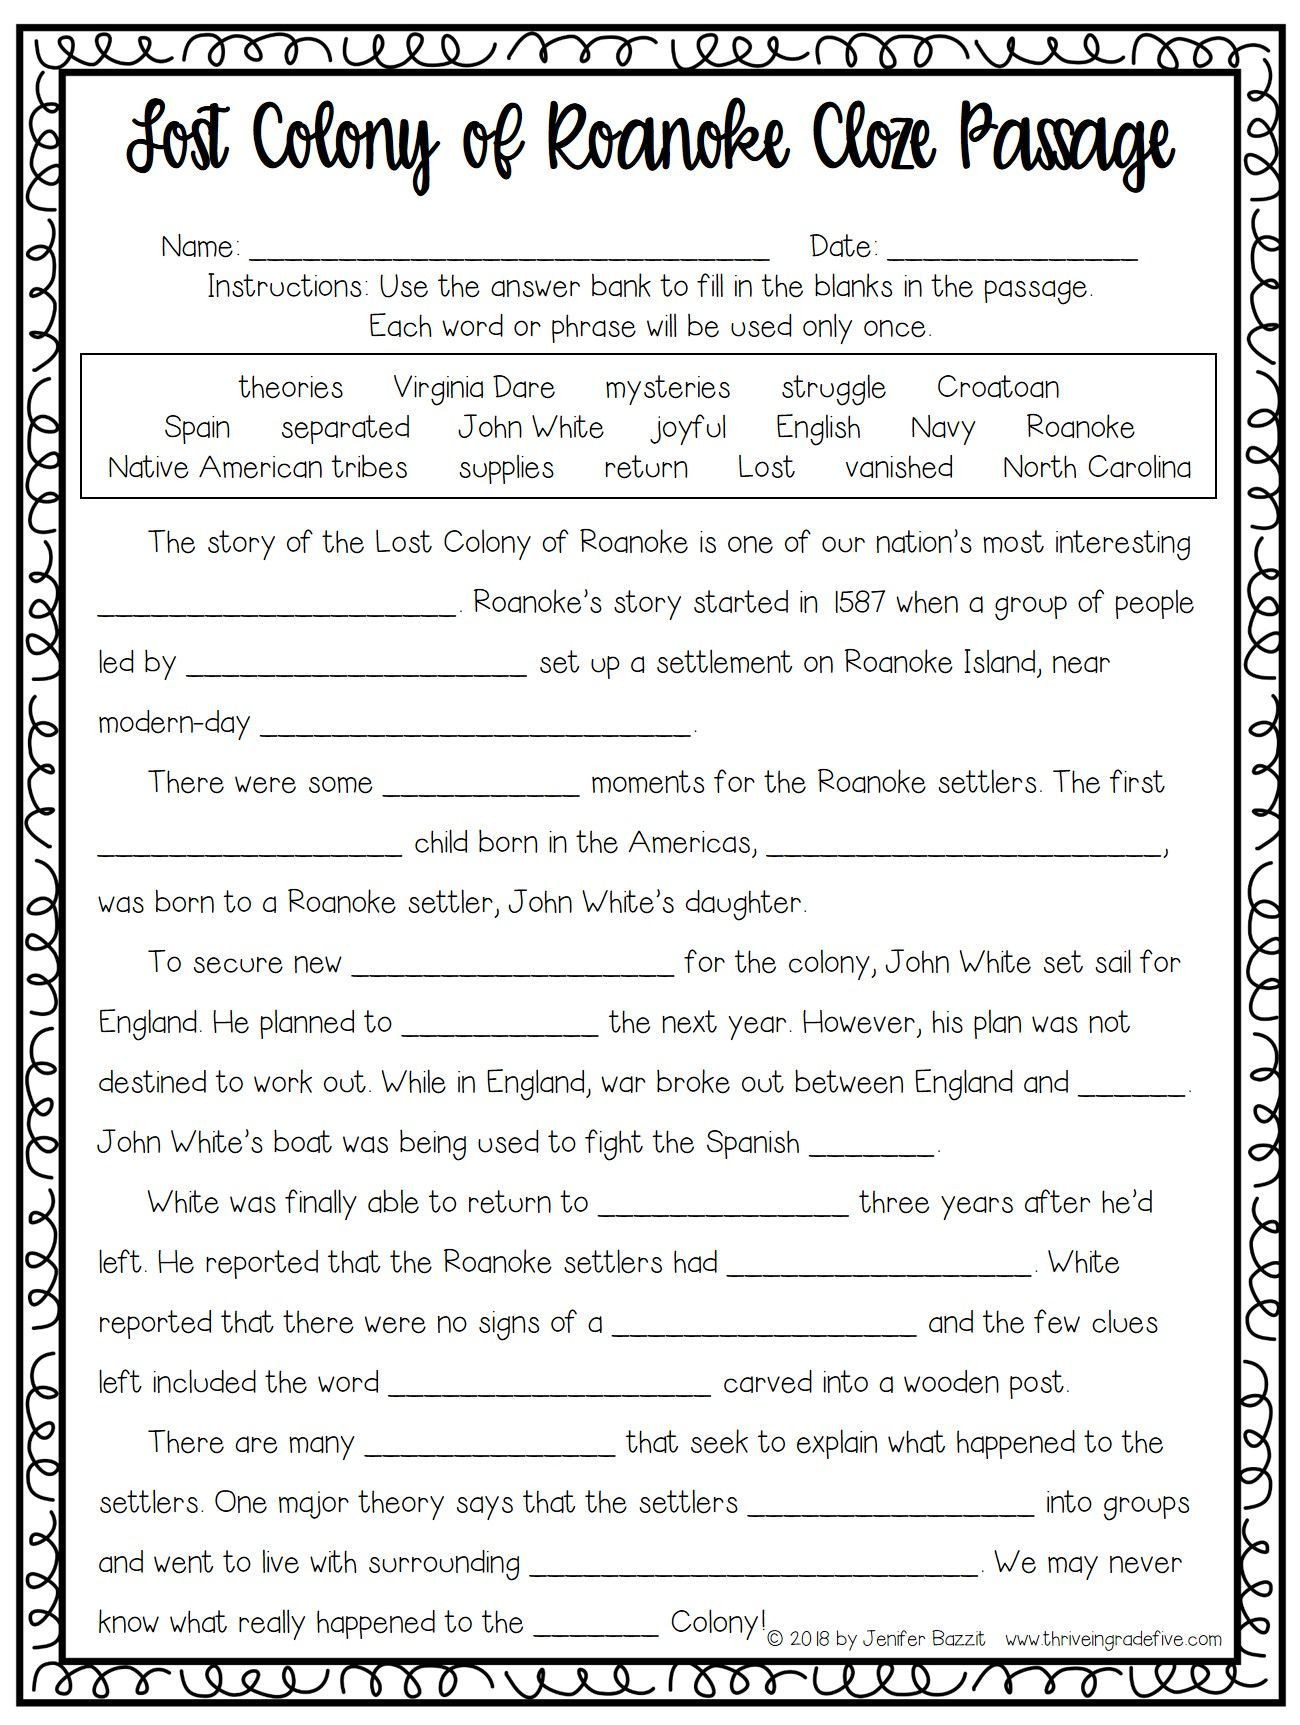 Social Studies Worksheets 8th Grade Lost Colony Of Roanoke Activity Free